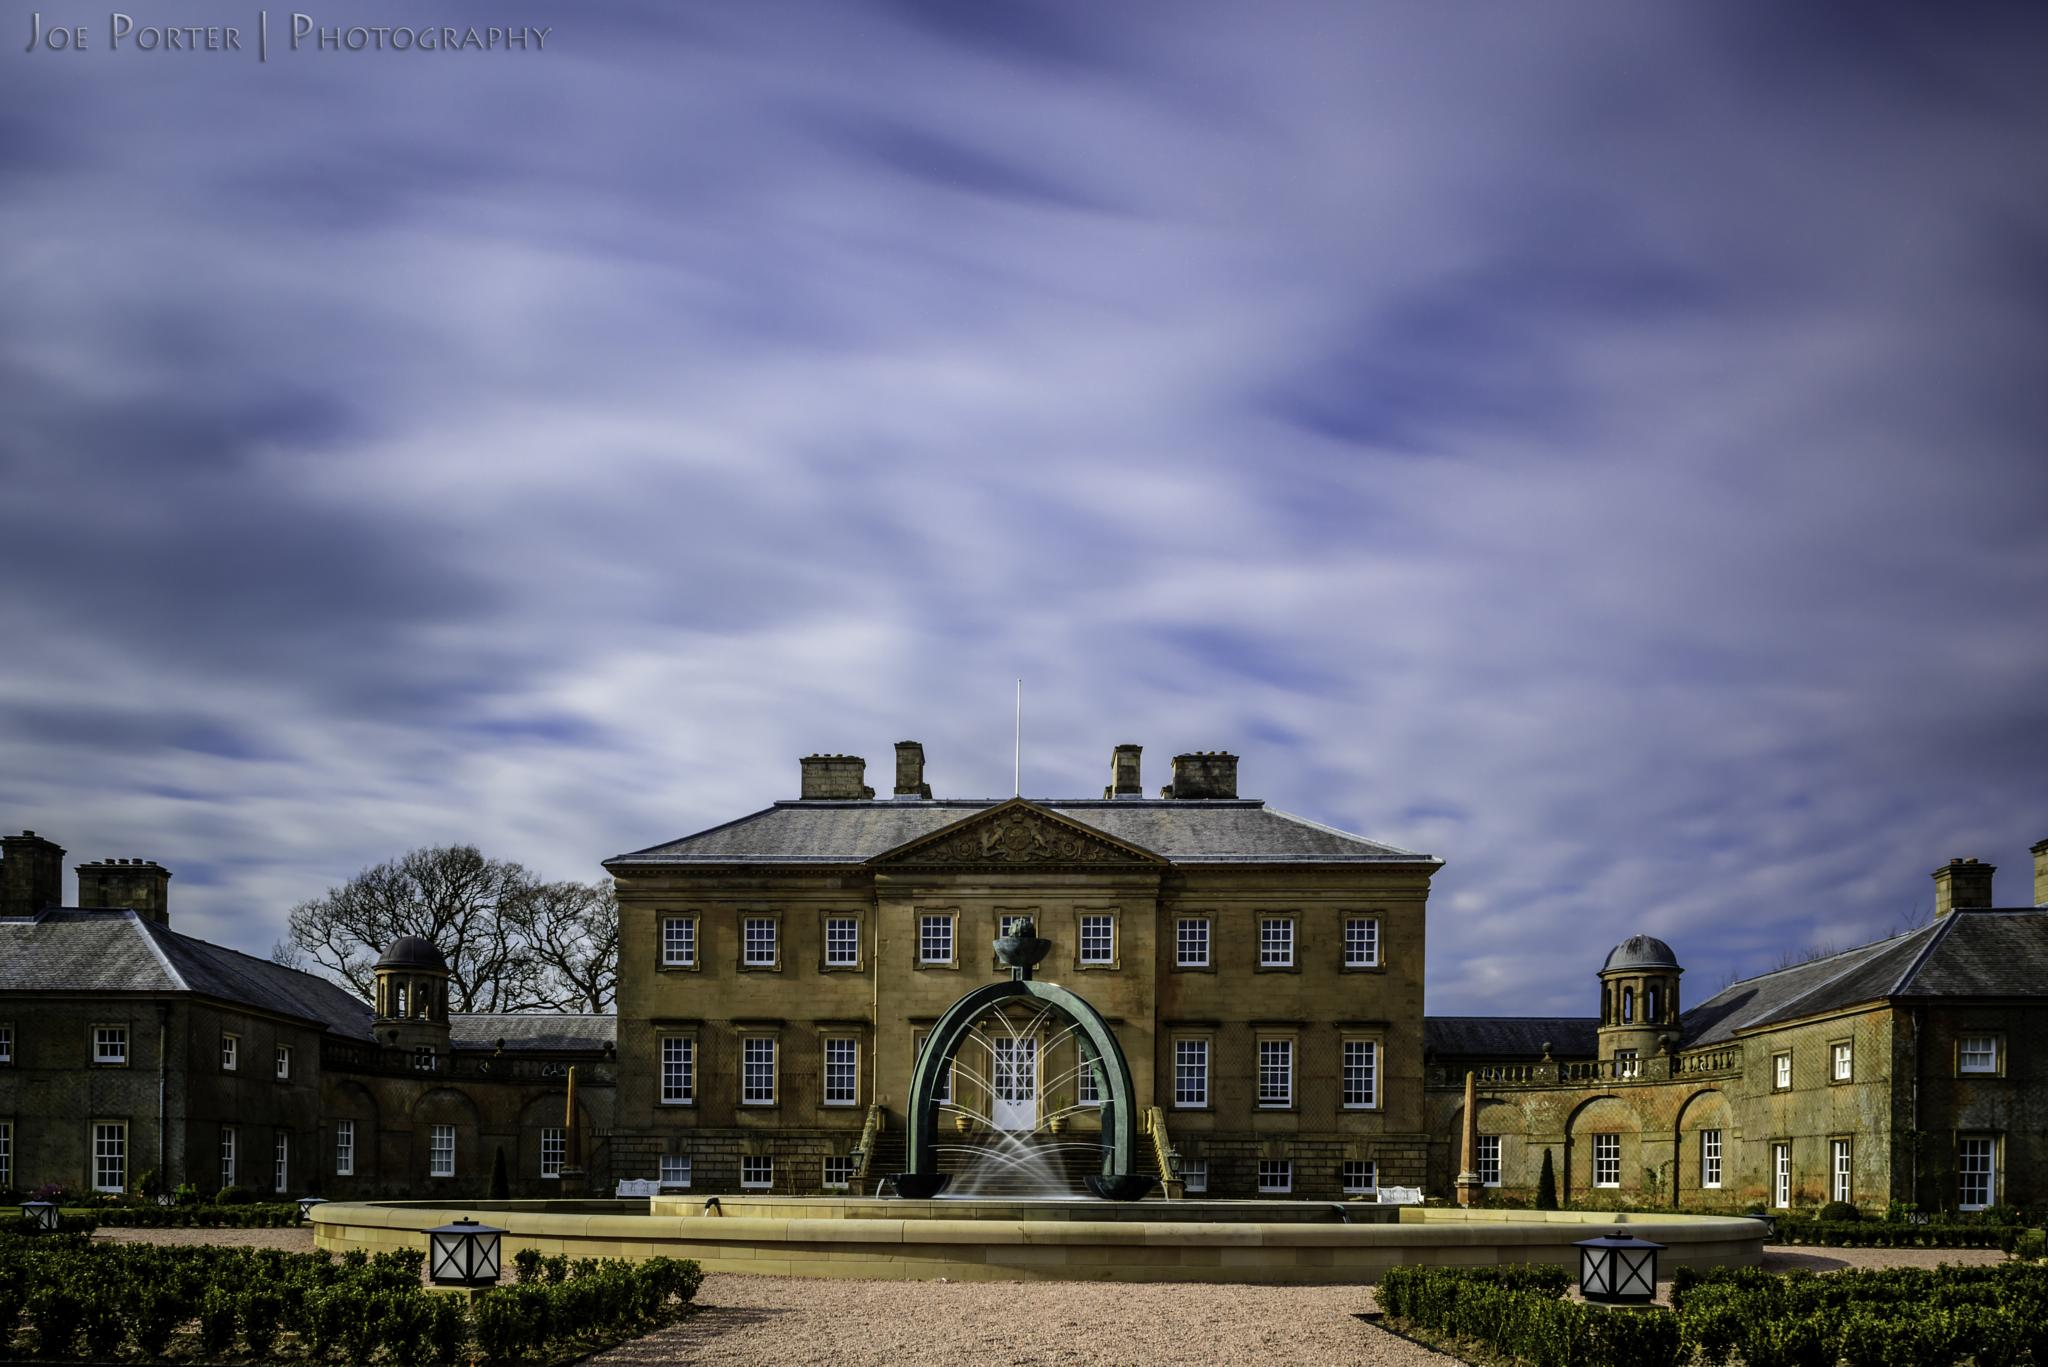 Dumfries House by Joe Porter Photography